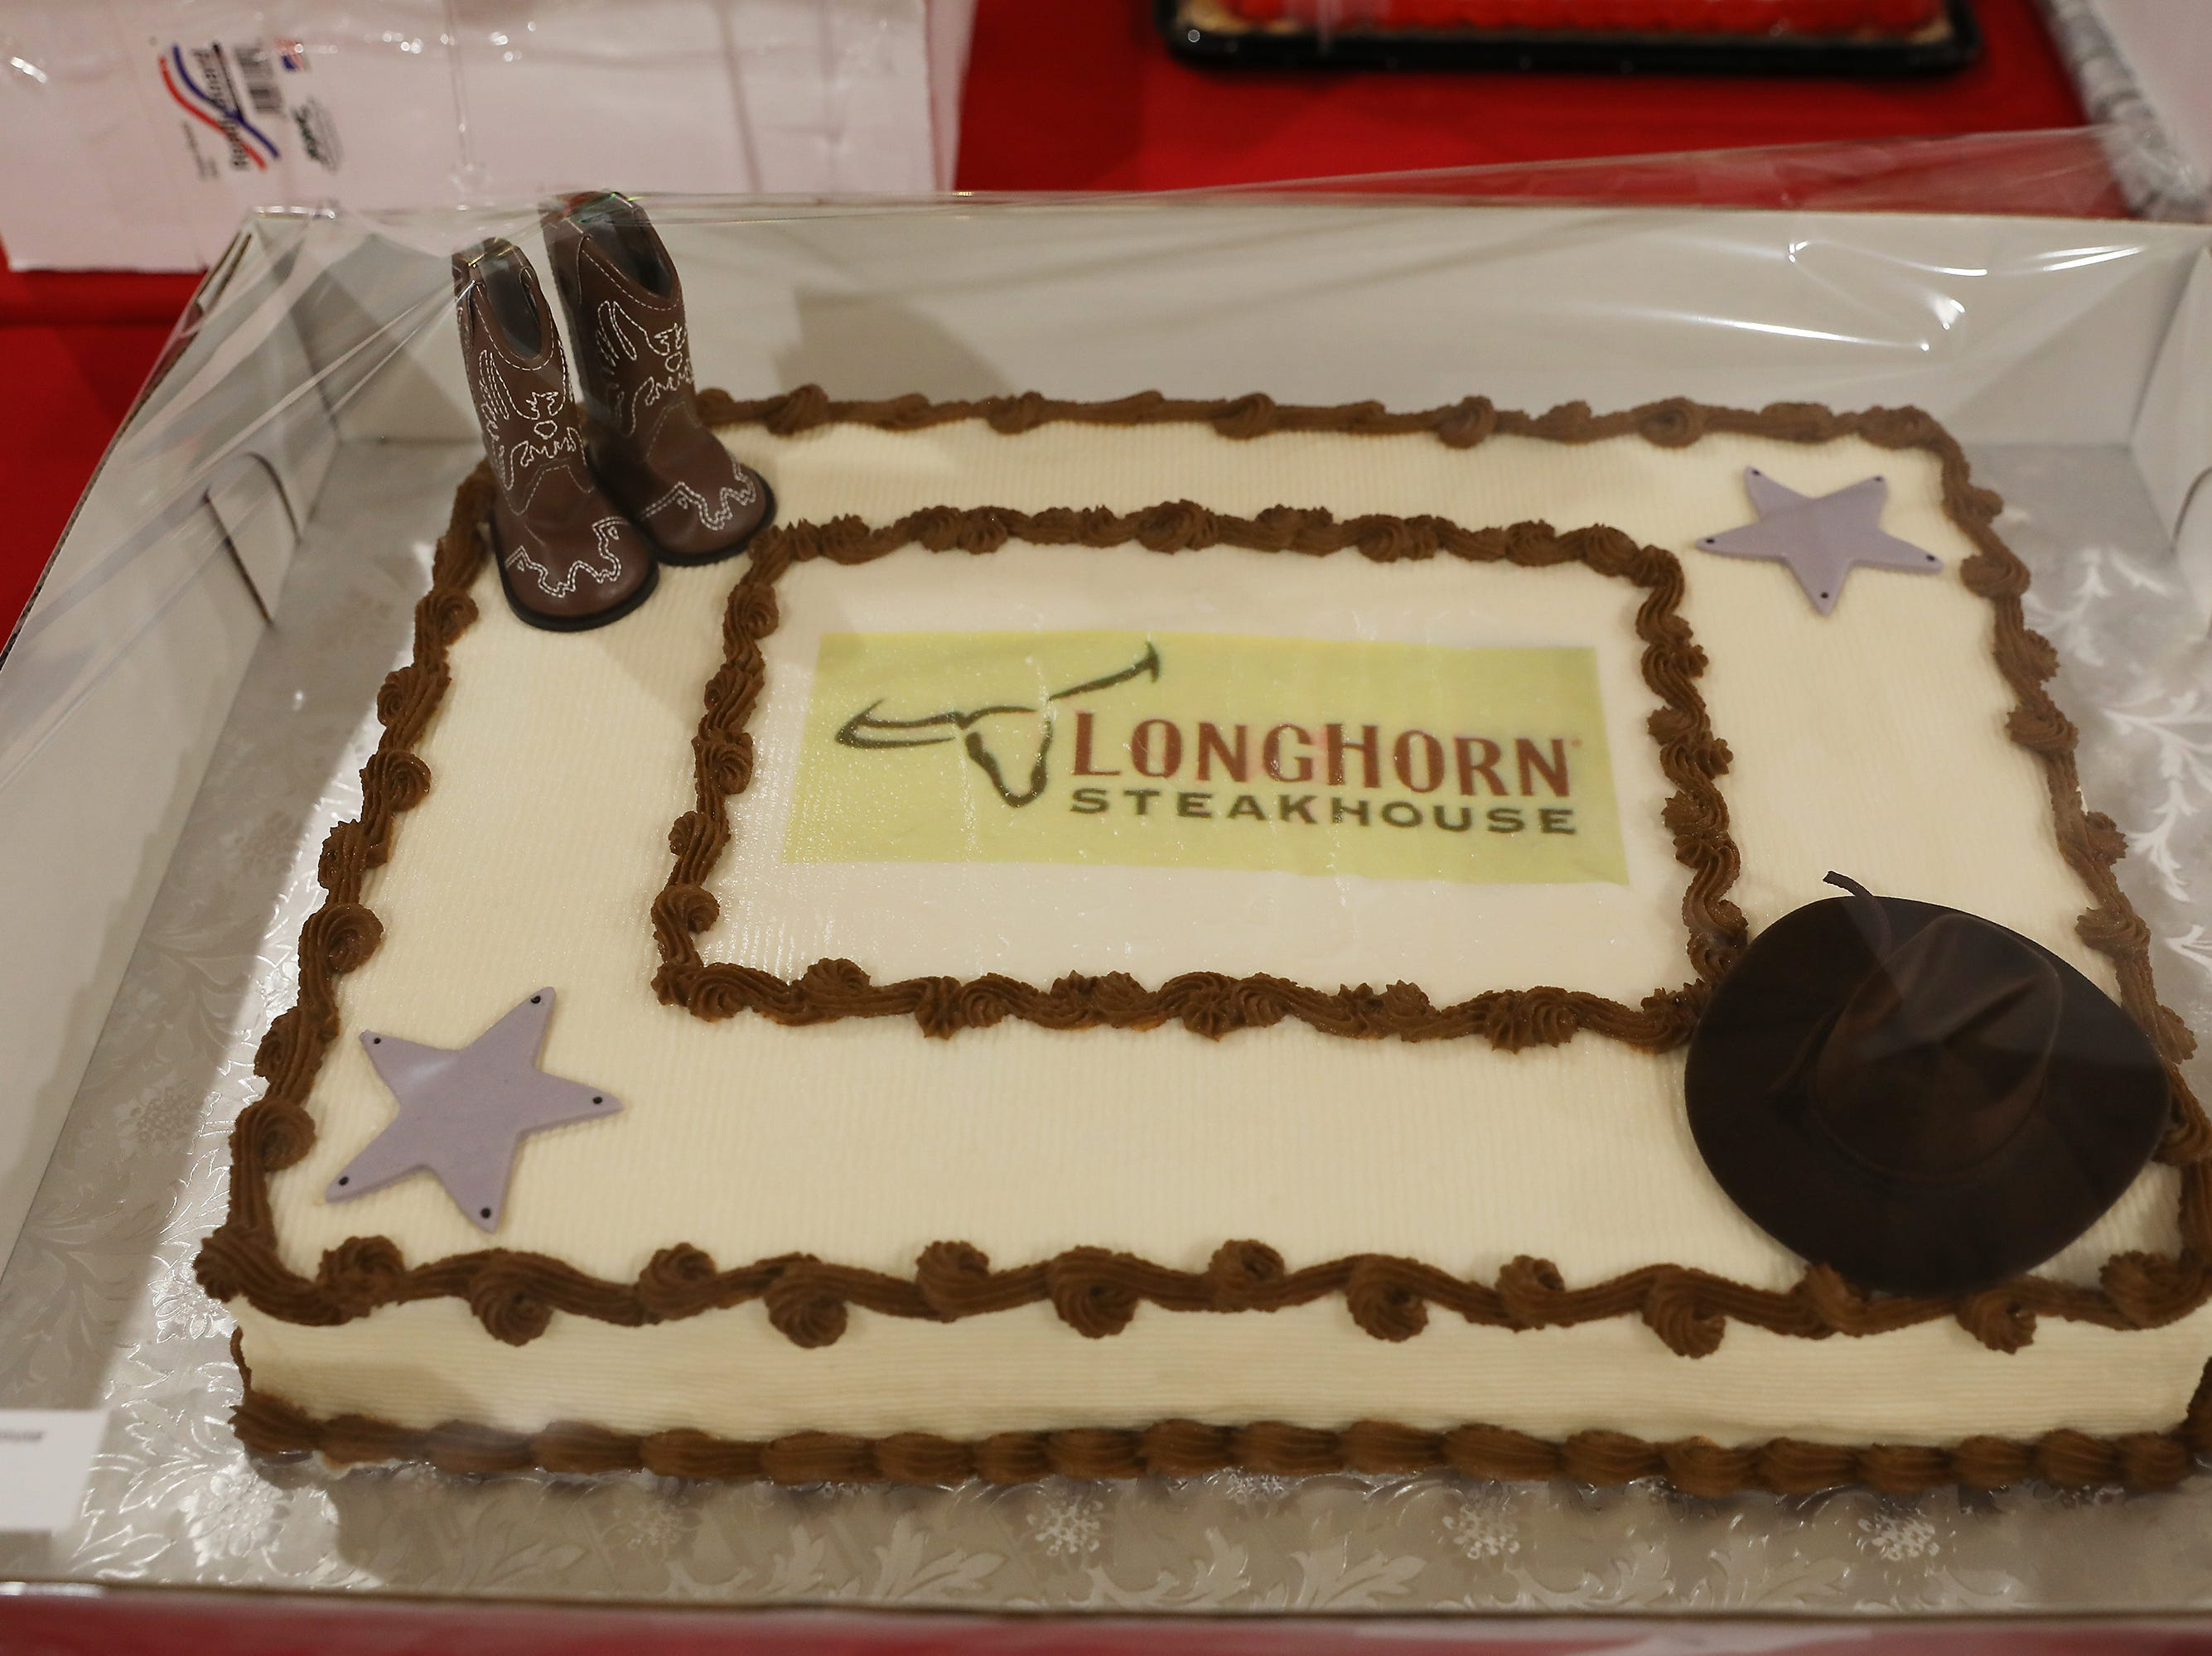 1:15 P.M. Thursday cake 101 Longhorn Steakhouse -  wine and gift cards